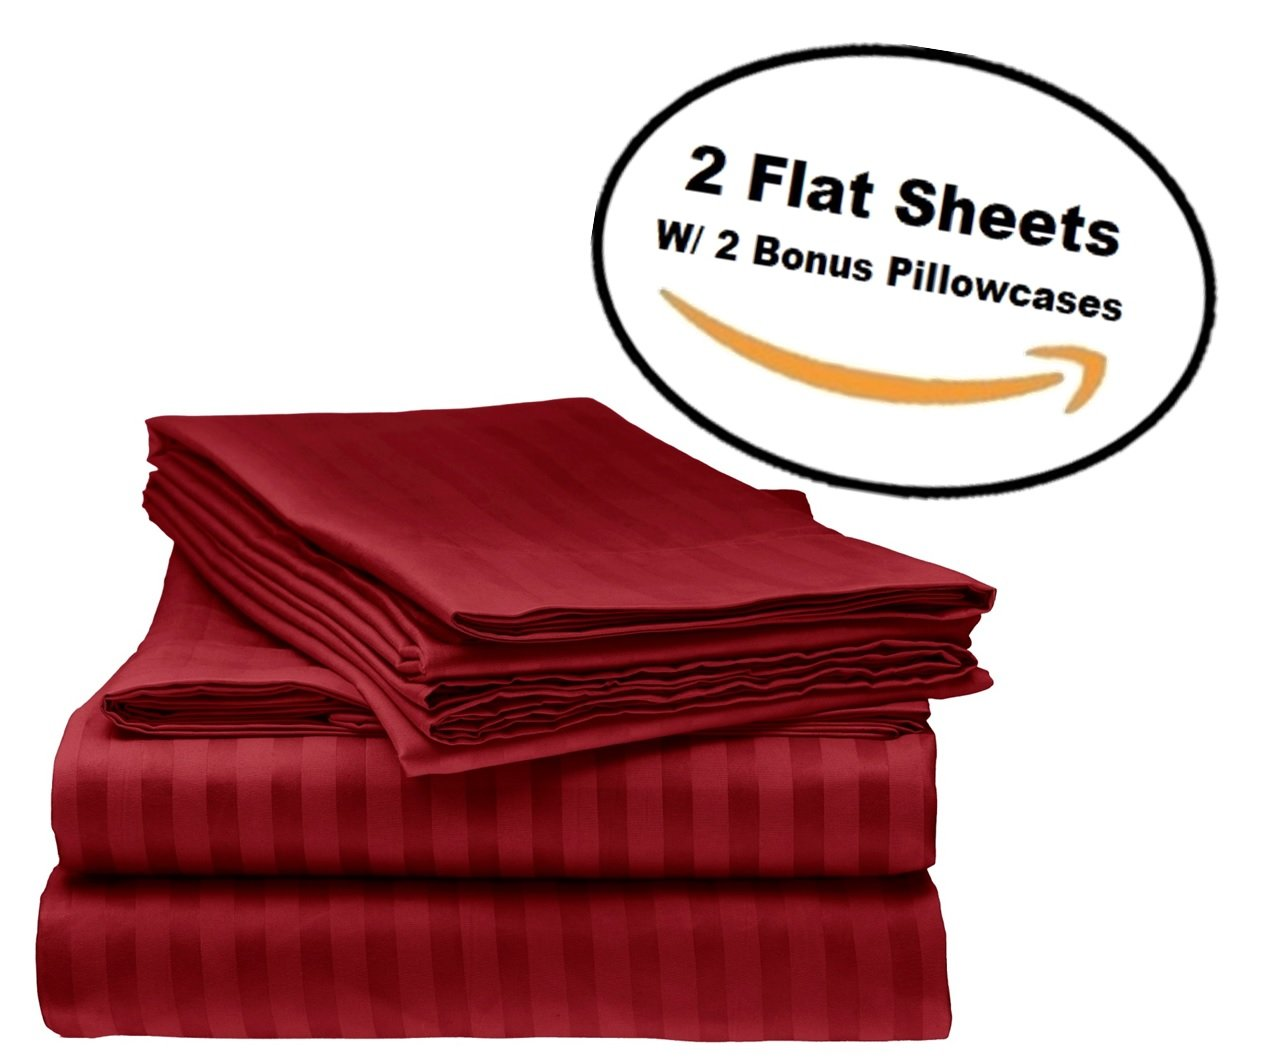 Deluxe 2Pk Flat Bed Sheets - Top Sheet, Soft 1800 Bedding, Highest Quality Brushed Microfiber, Hypoallergenic, Wrinkle, Fade, Stain Resistant - Bonus 2 Free pillowcases - (Queen Size Burgundy)